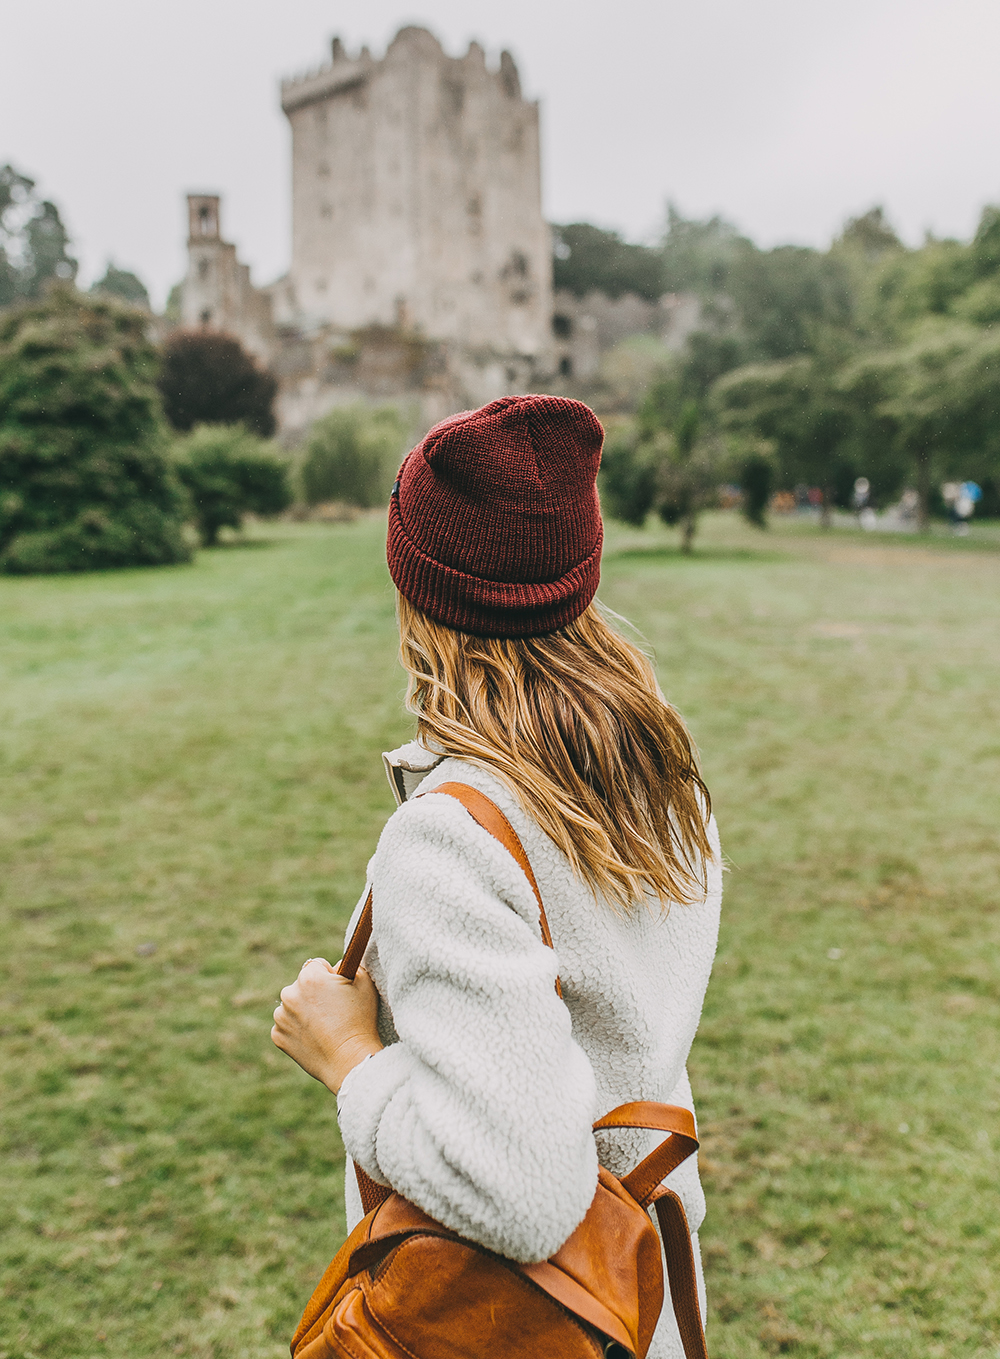 livvyland-blog-olivia-watson-austin-texas-fashion-lifestyle-travel-blogger-patagonia-retro-pile-fleece-pullover-backcountry-outfit-blarney-castle-cork-ireland-6